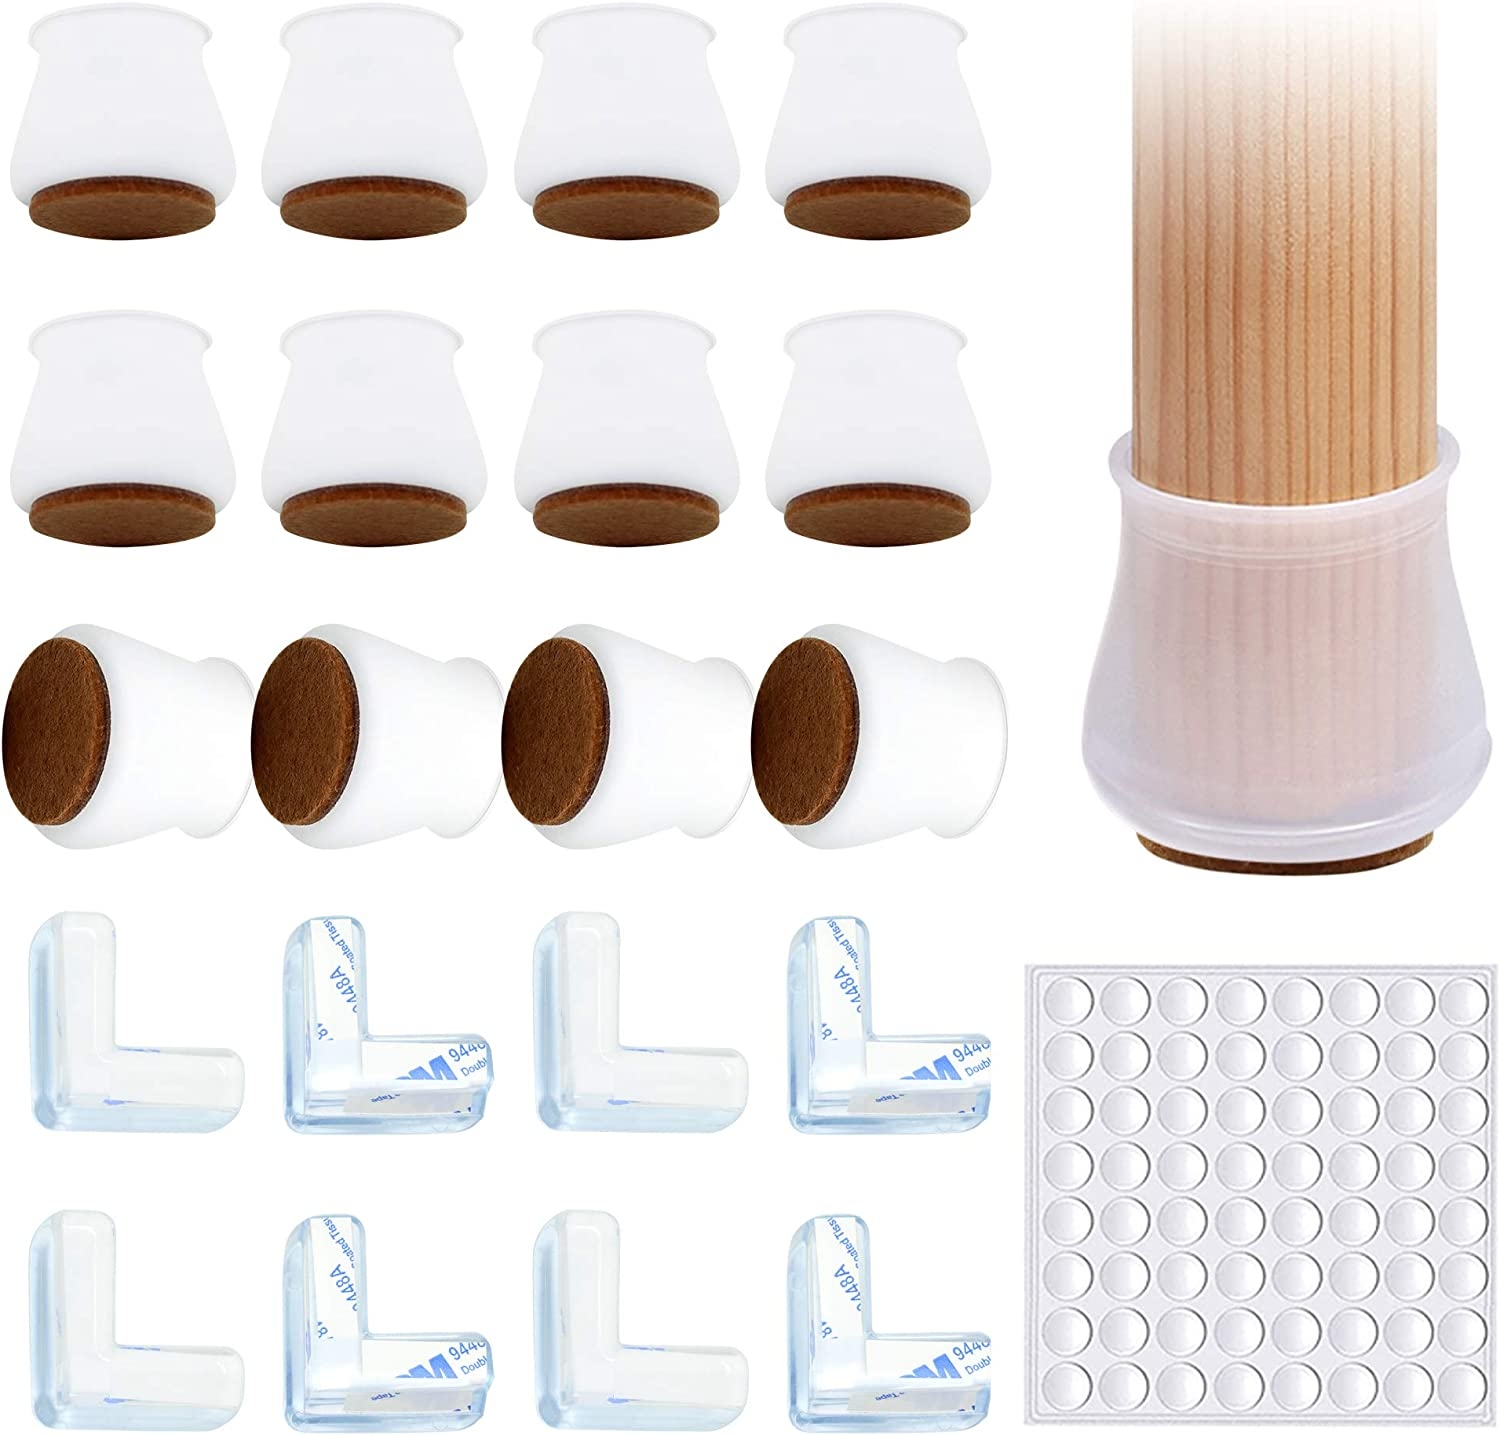 32pcs Silicone Chair Leg Caps, Rubber Chair Leg Protectors for Hardwood Floors, Chair Leg Covers for Round or Square, Furniture Felt Pad Leg Protection for Wood Floors, Floor Protector for Chair